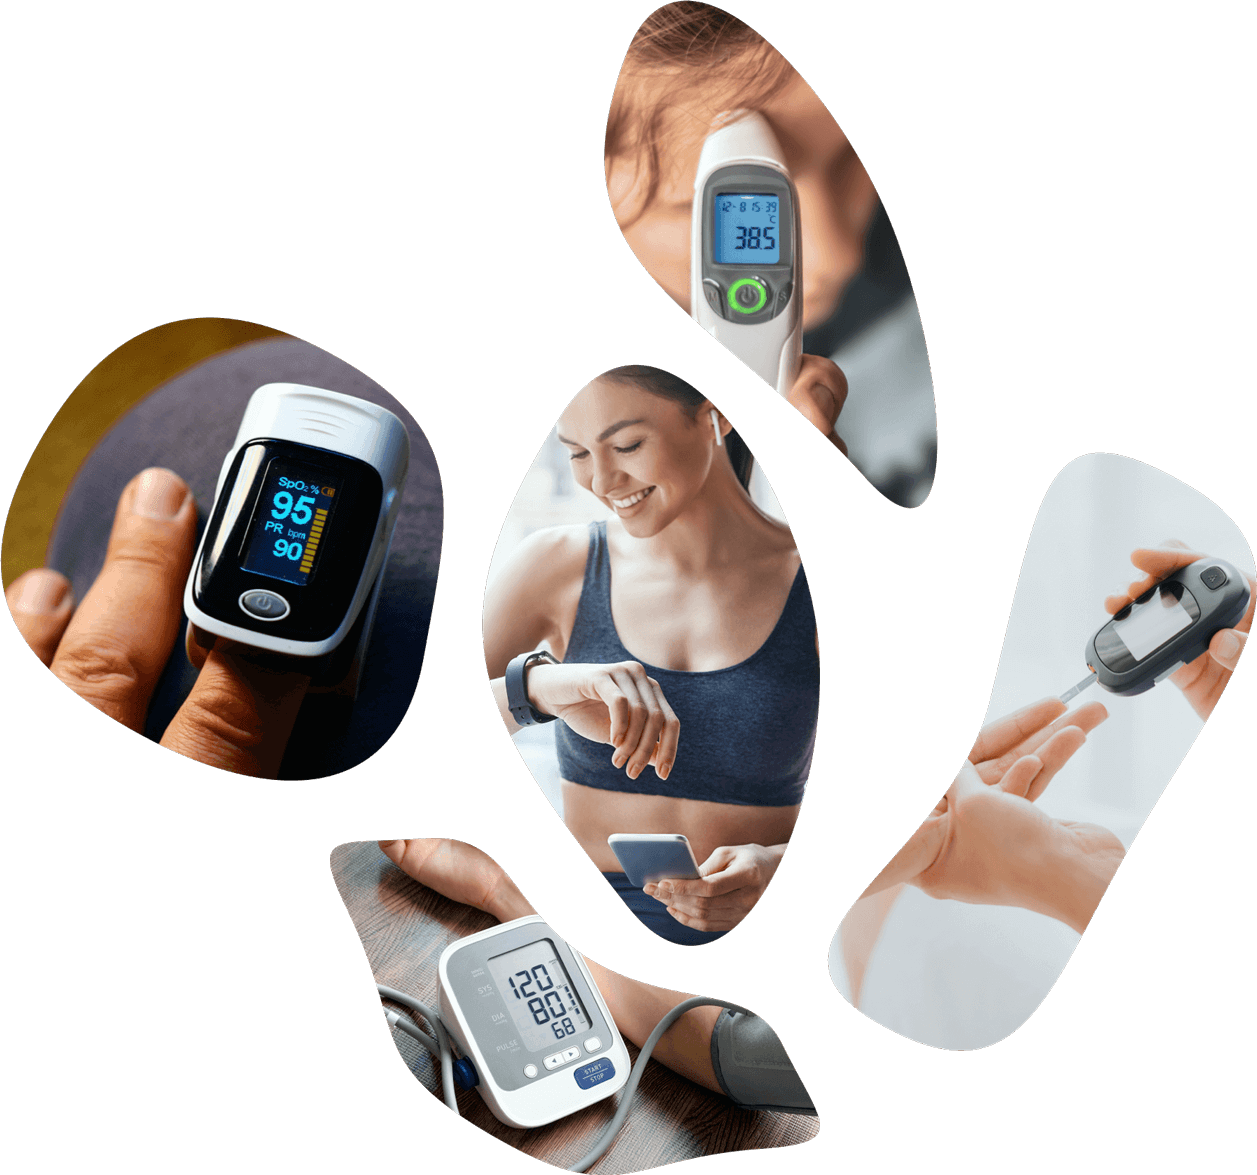 A collage of devices that check temp, blood pressure, etc.